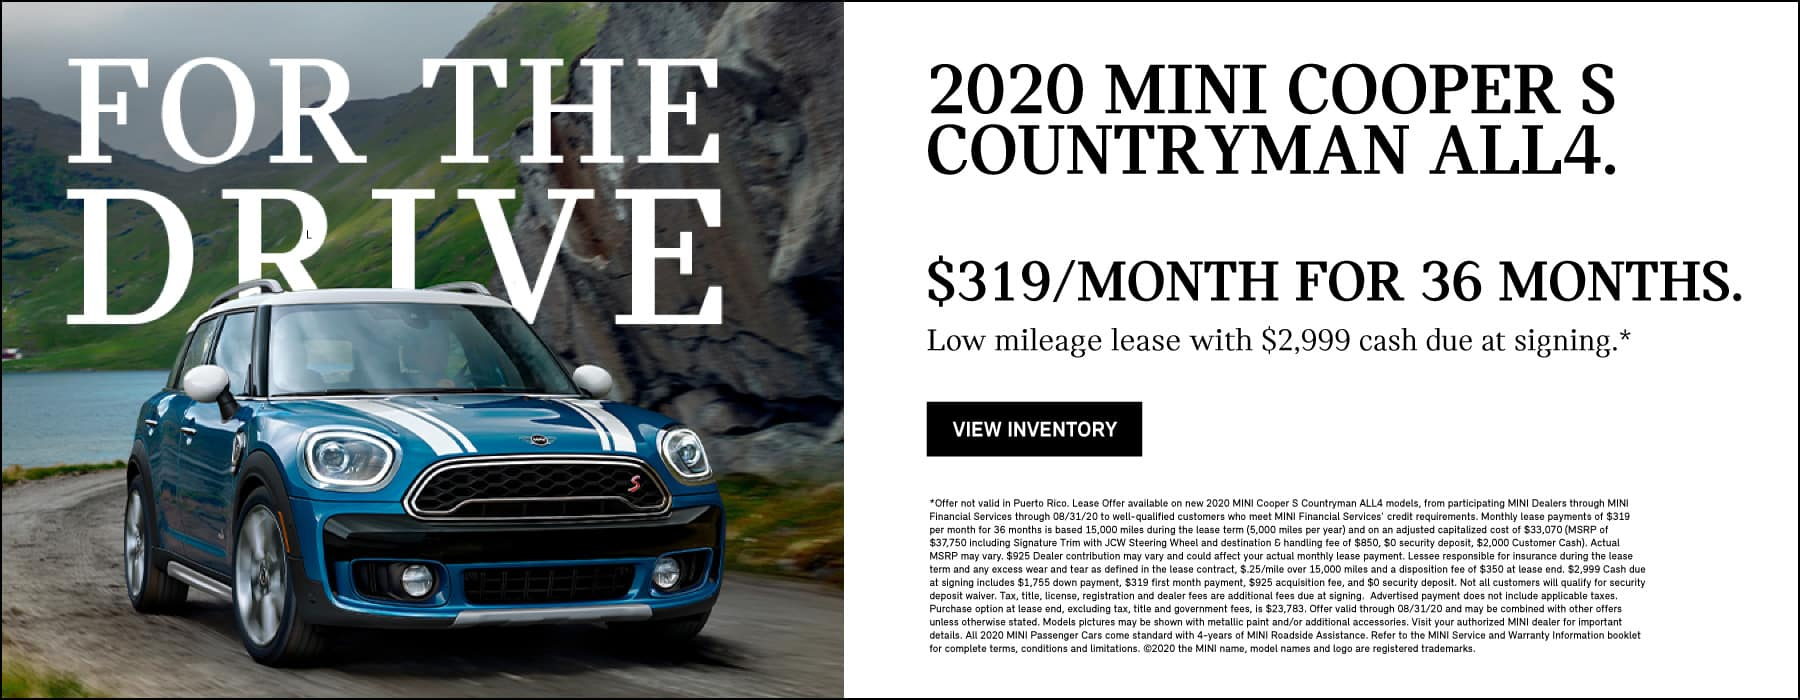 2020 MINI COOPER S COUNTRYMAN ALL4 $319/MONTH FOR 36 MONTHS